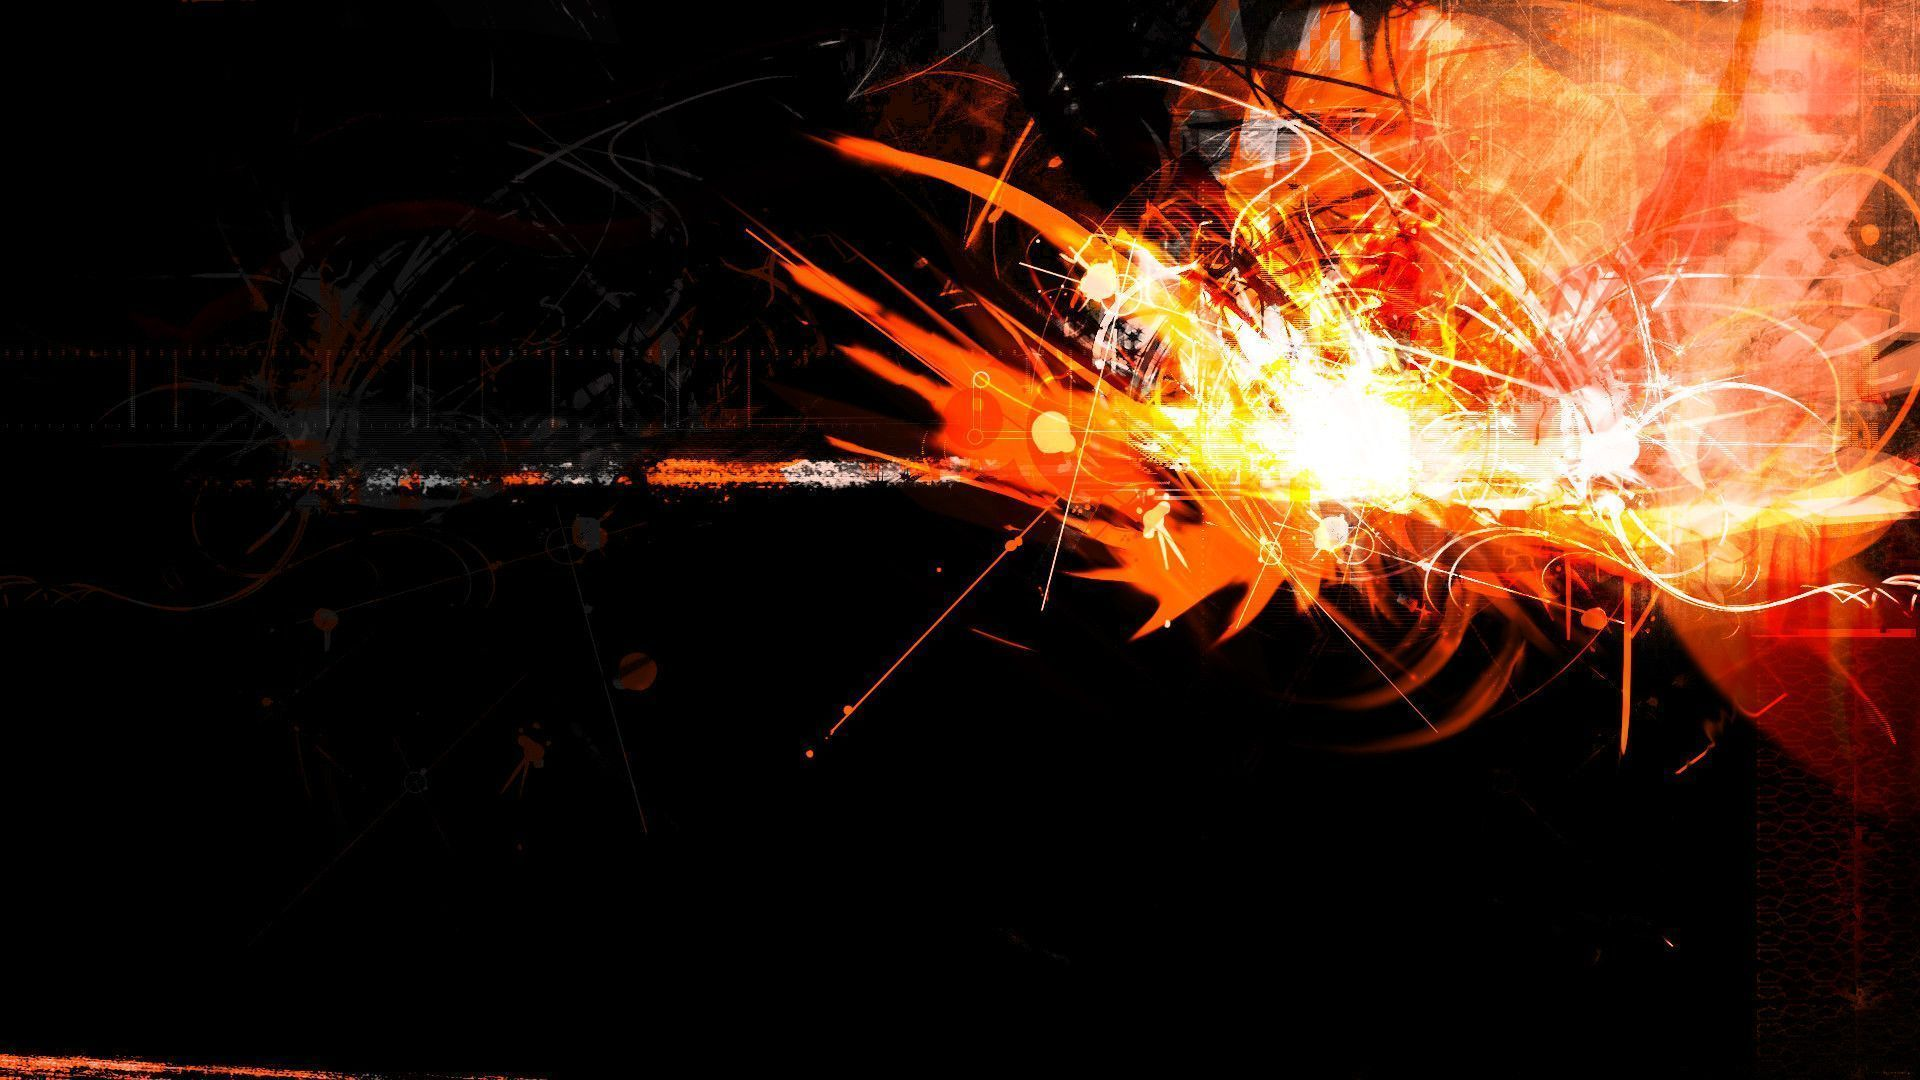 Black and Orange Desktop Wallpaper 1920x1080